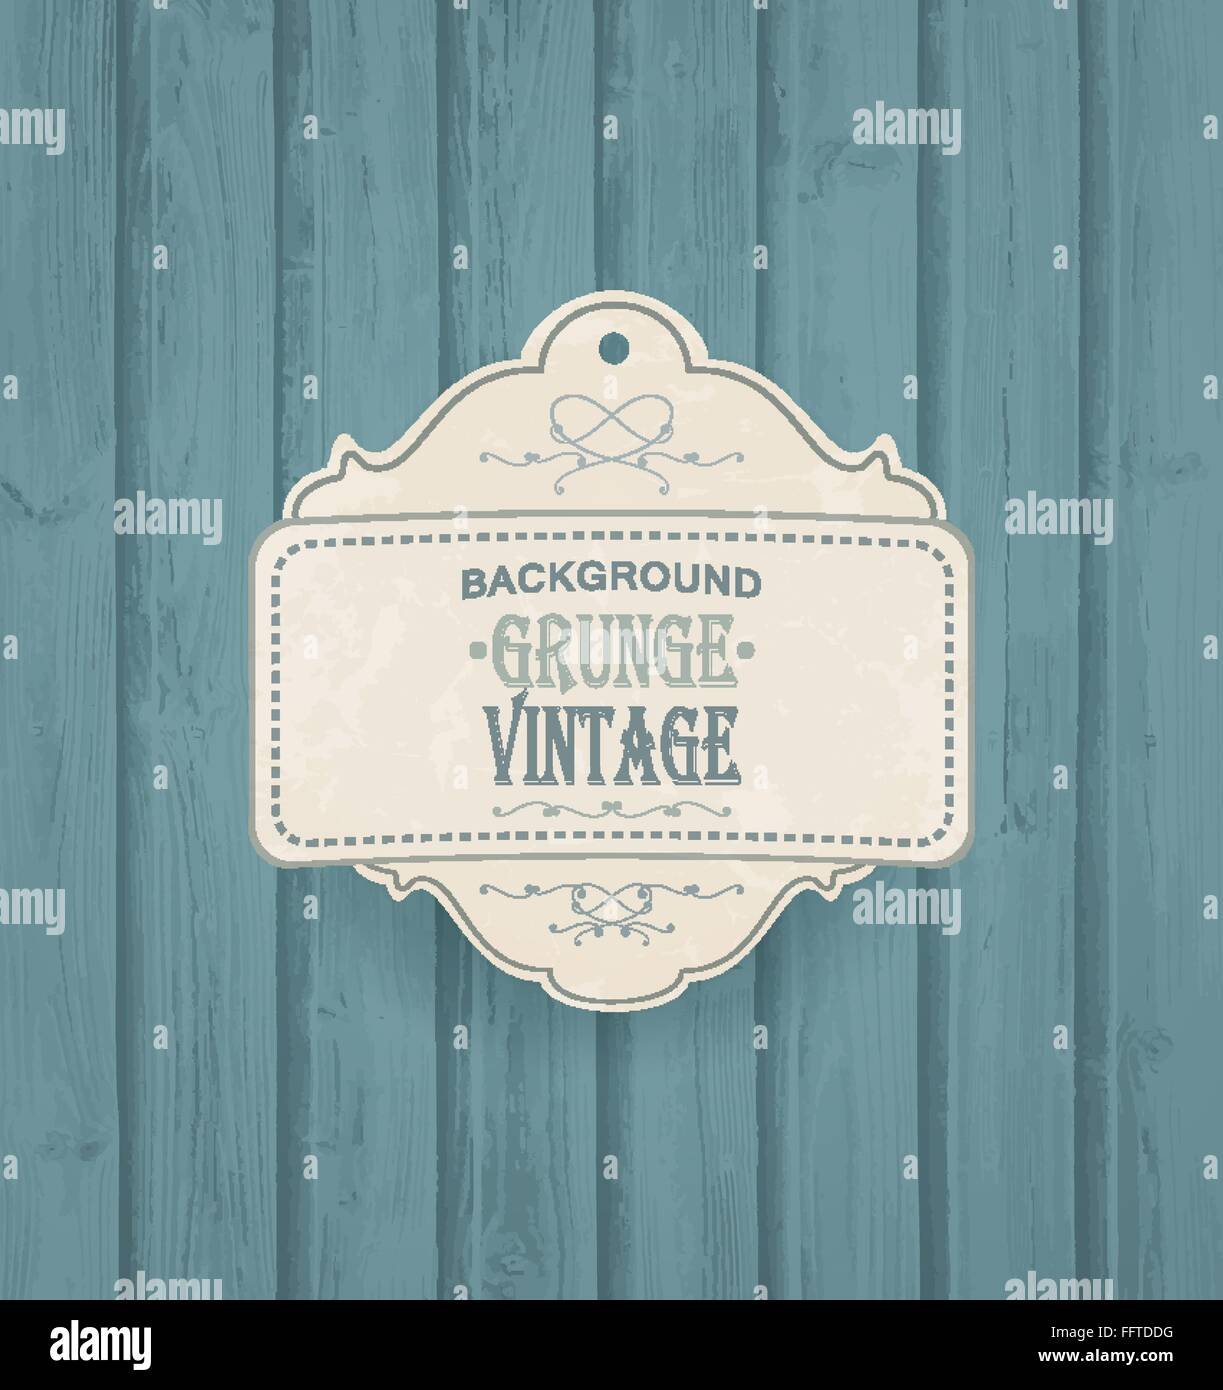 Wooden Background With Vintage Frame - Stock Image